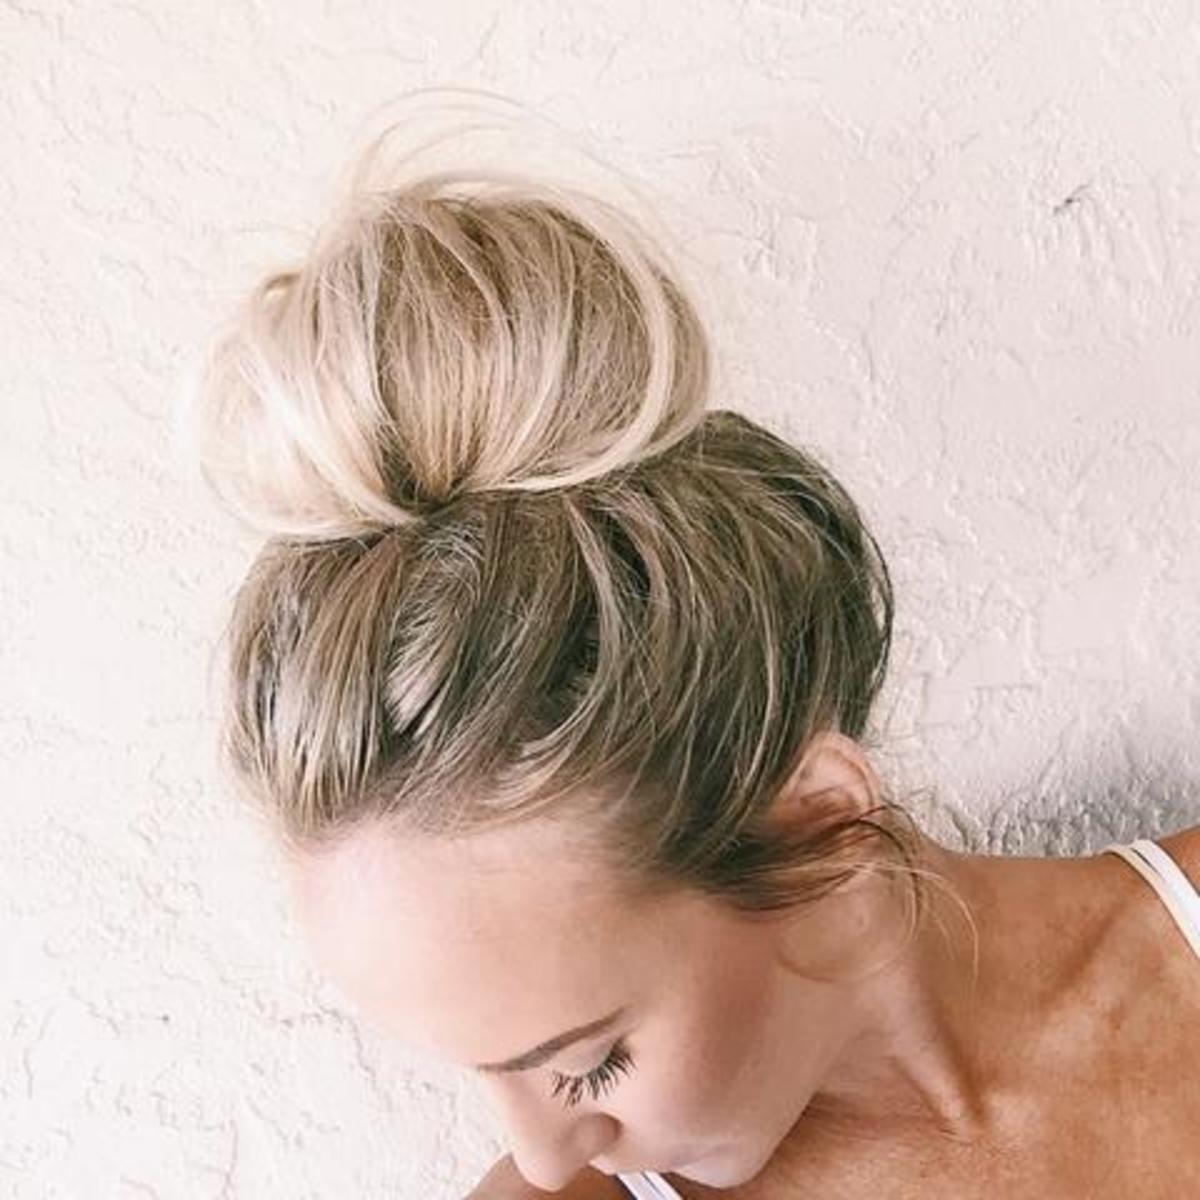 hairstyles_round_faces